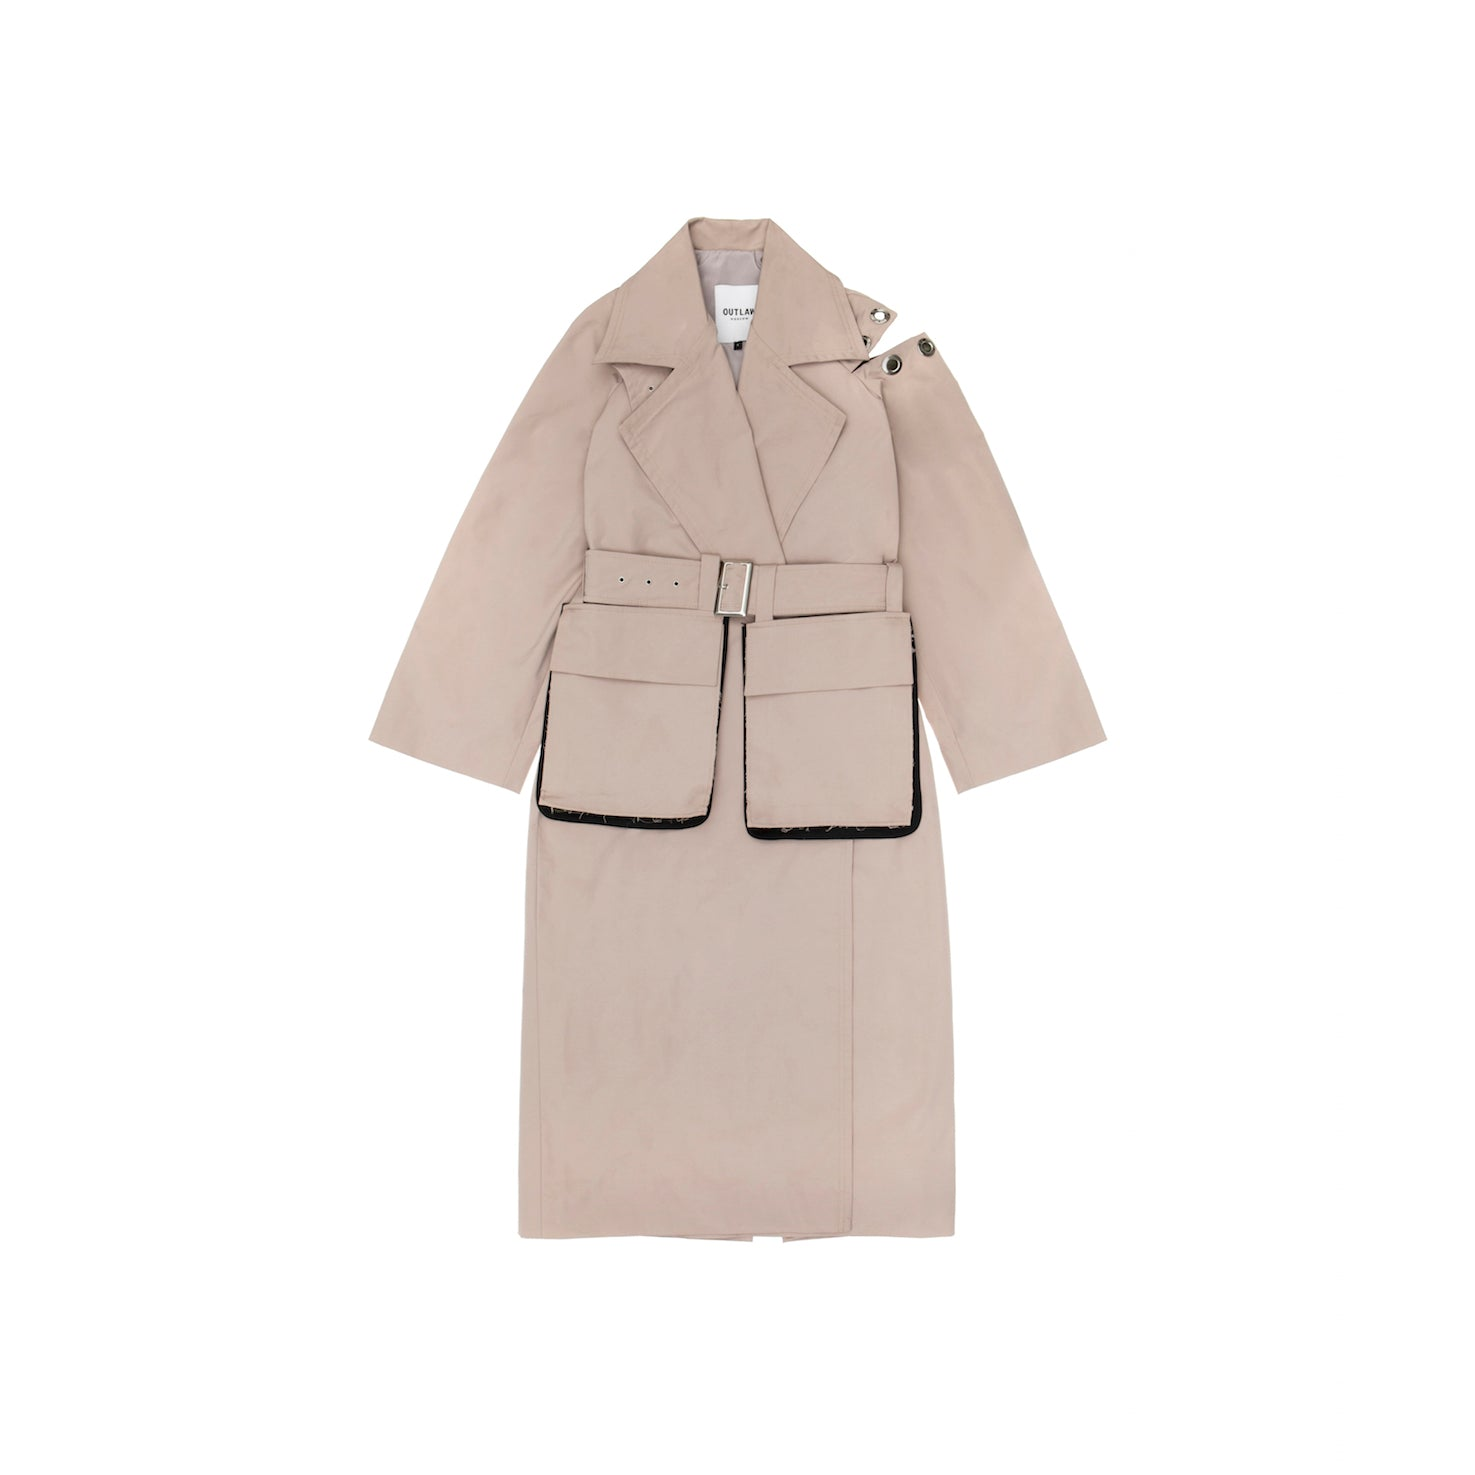 Ragged Sleeve Trench